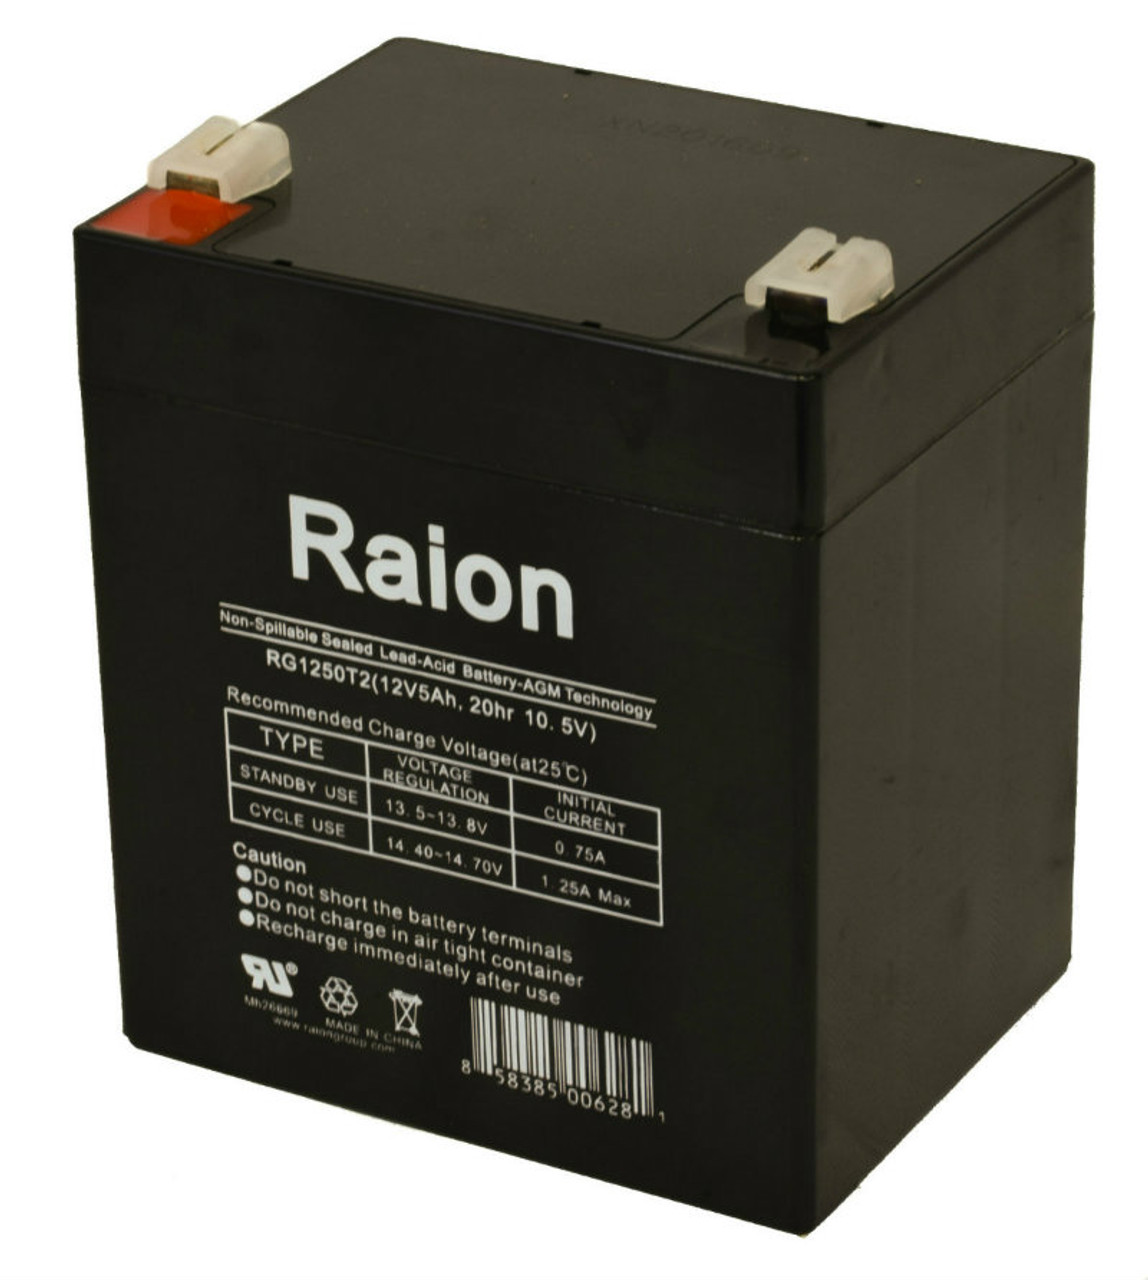 Raion Power RG1250T1 Replacement Battery for SigmasTek SP12-5